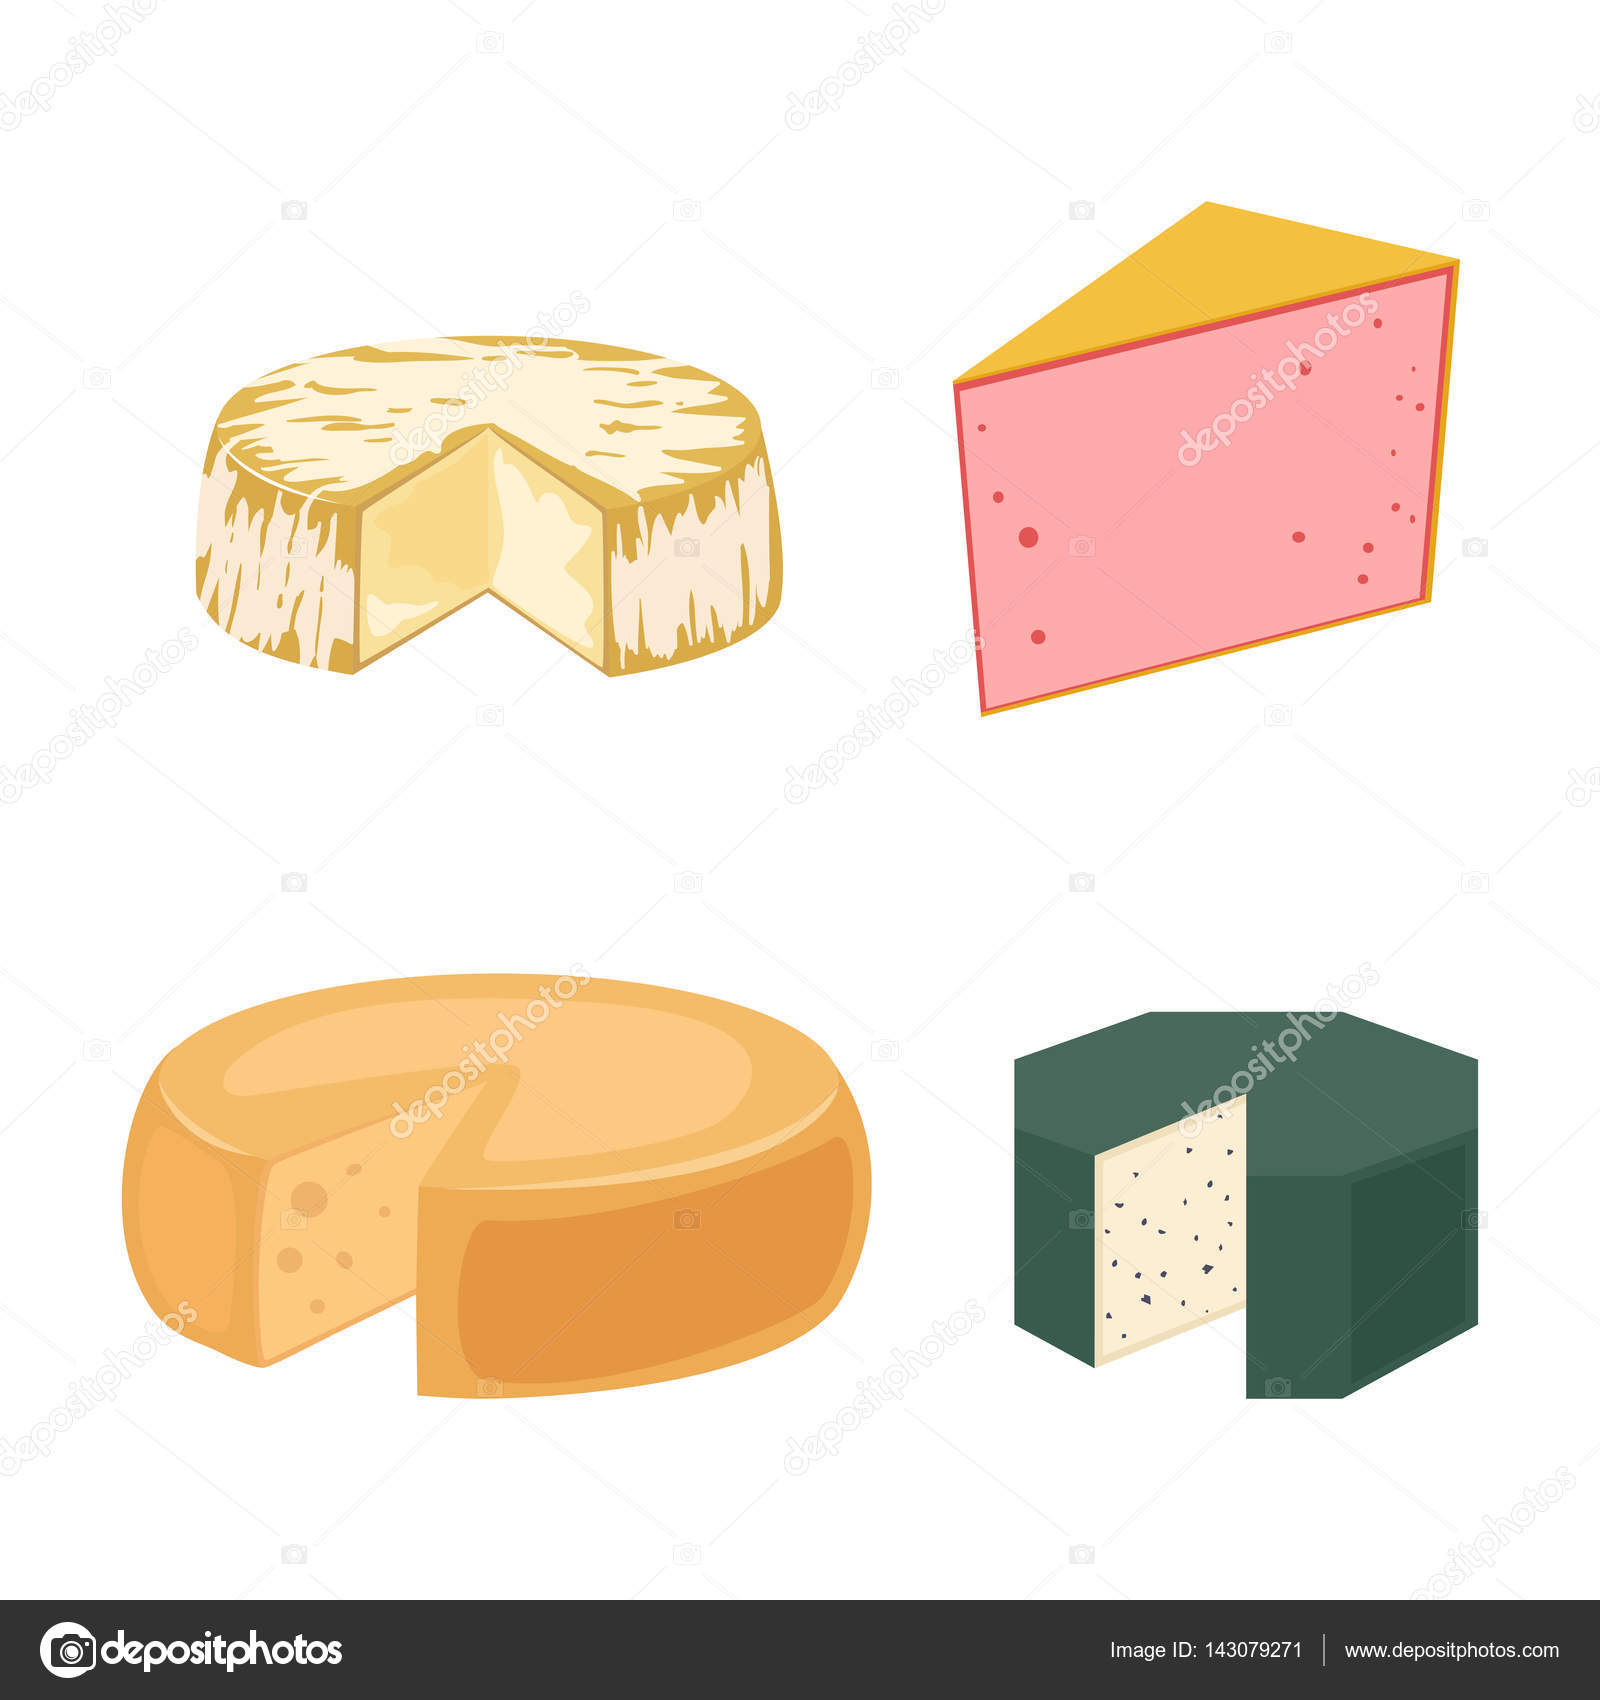 Delicious fresh cheese variety italian dinner icon flat dairy food.